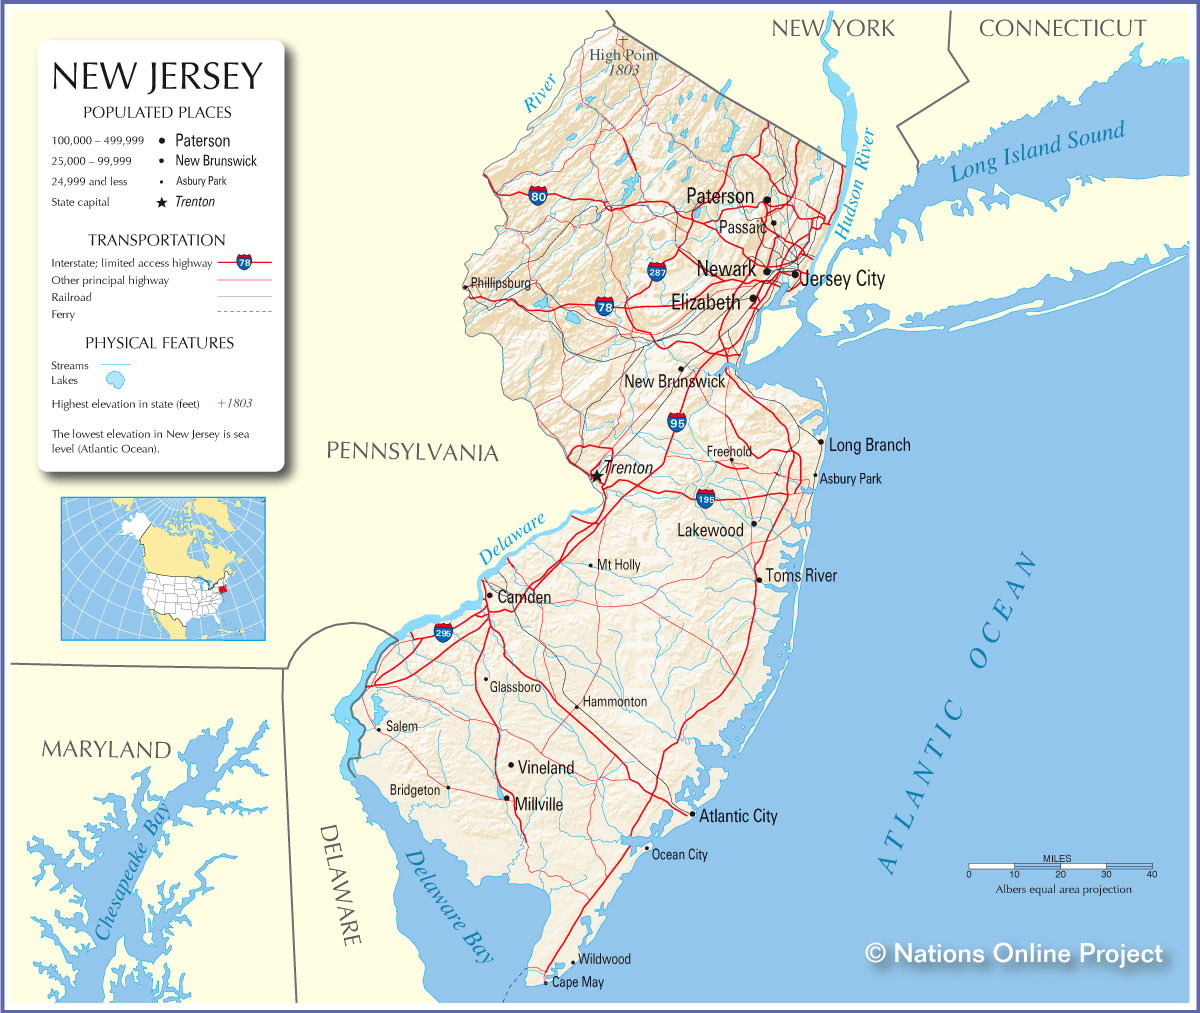 FileMap Of USA NJsvg Wikimedia Commons FileNew Jersey Locator Map